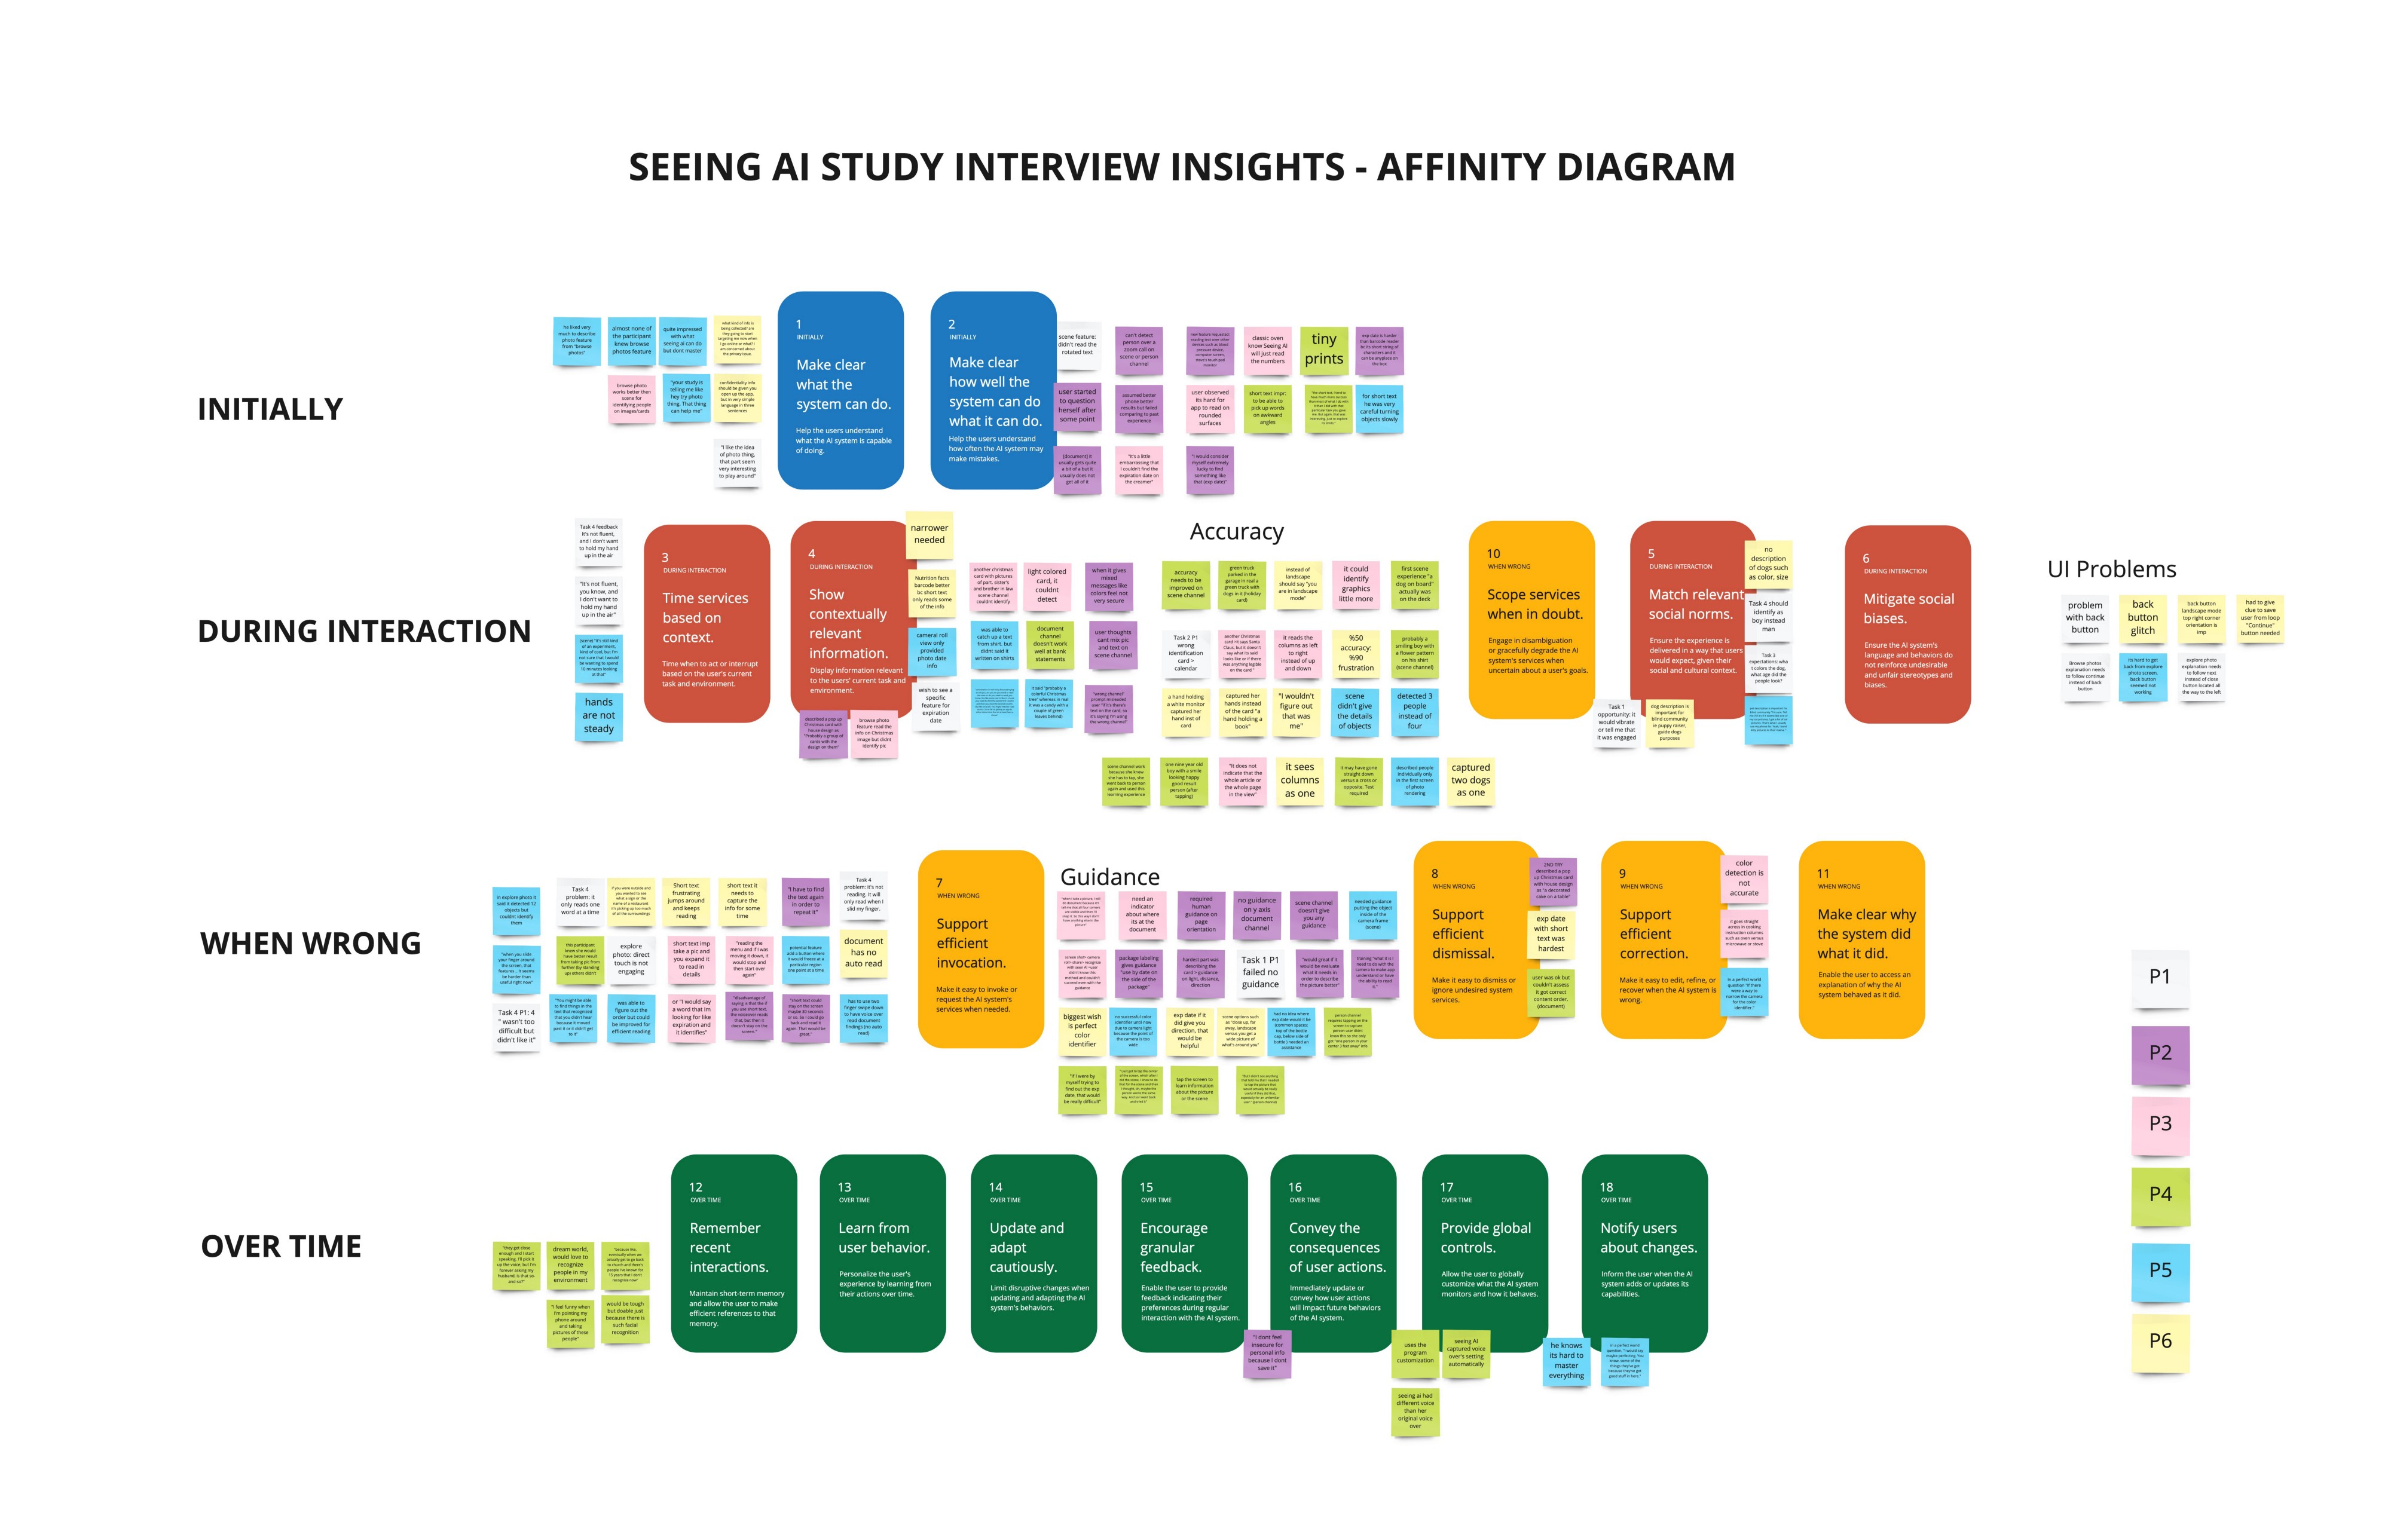 An affinity diagram composed of interviews notes written on post-its that are matched with the Human-AI guideline cards